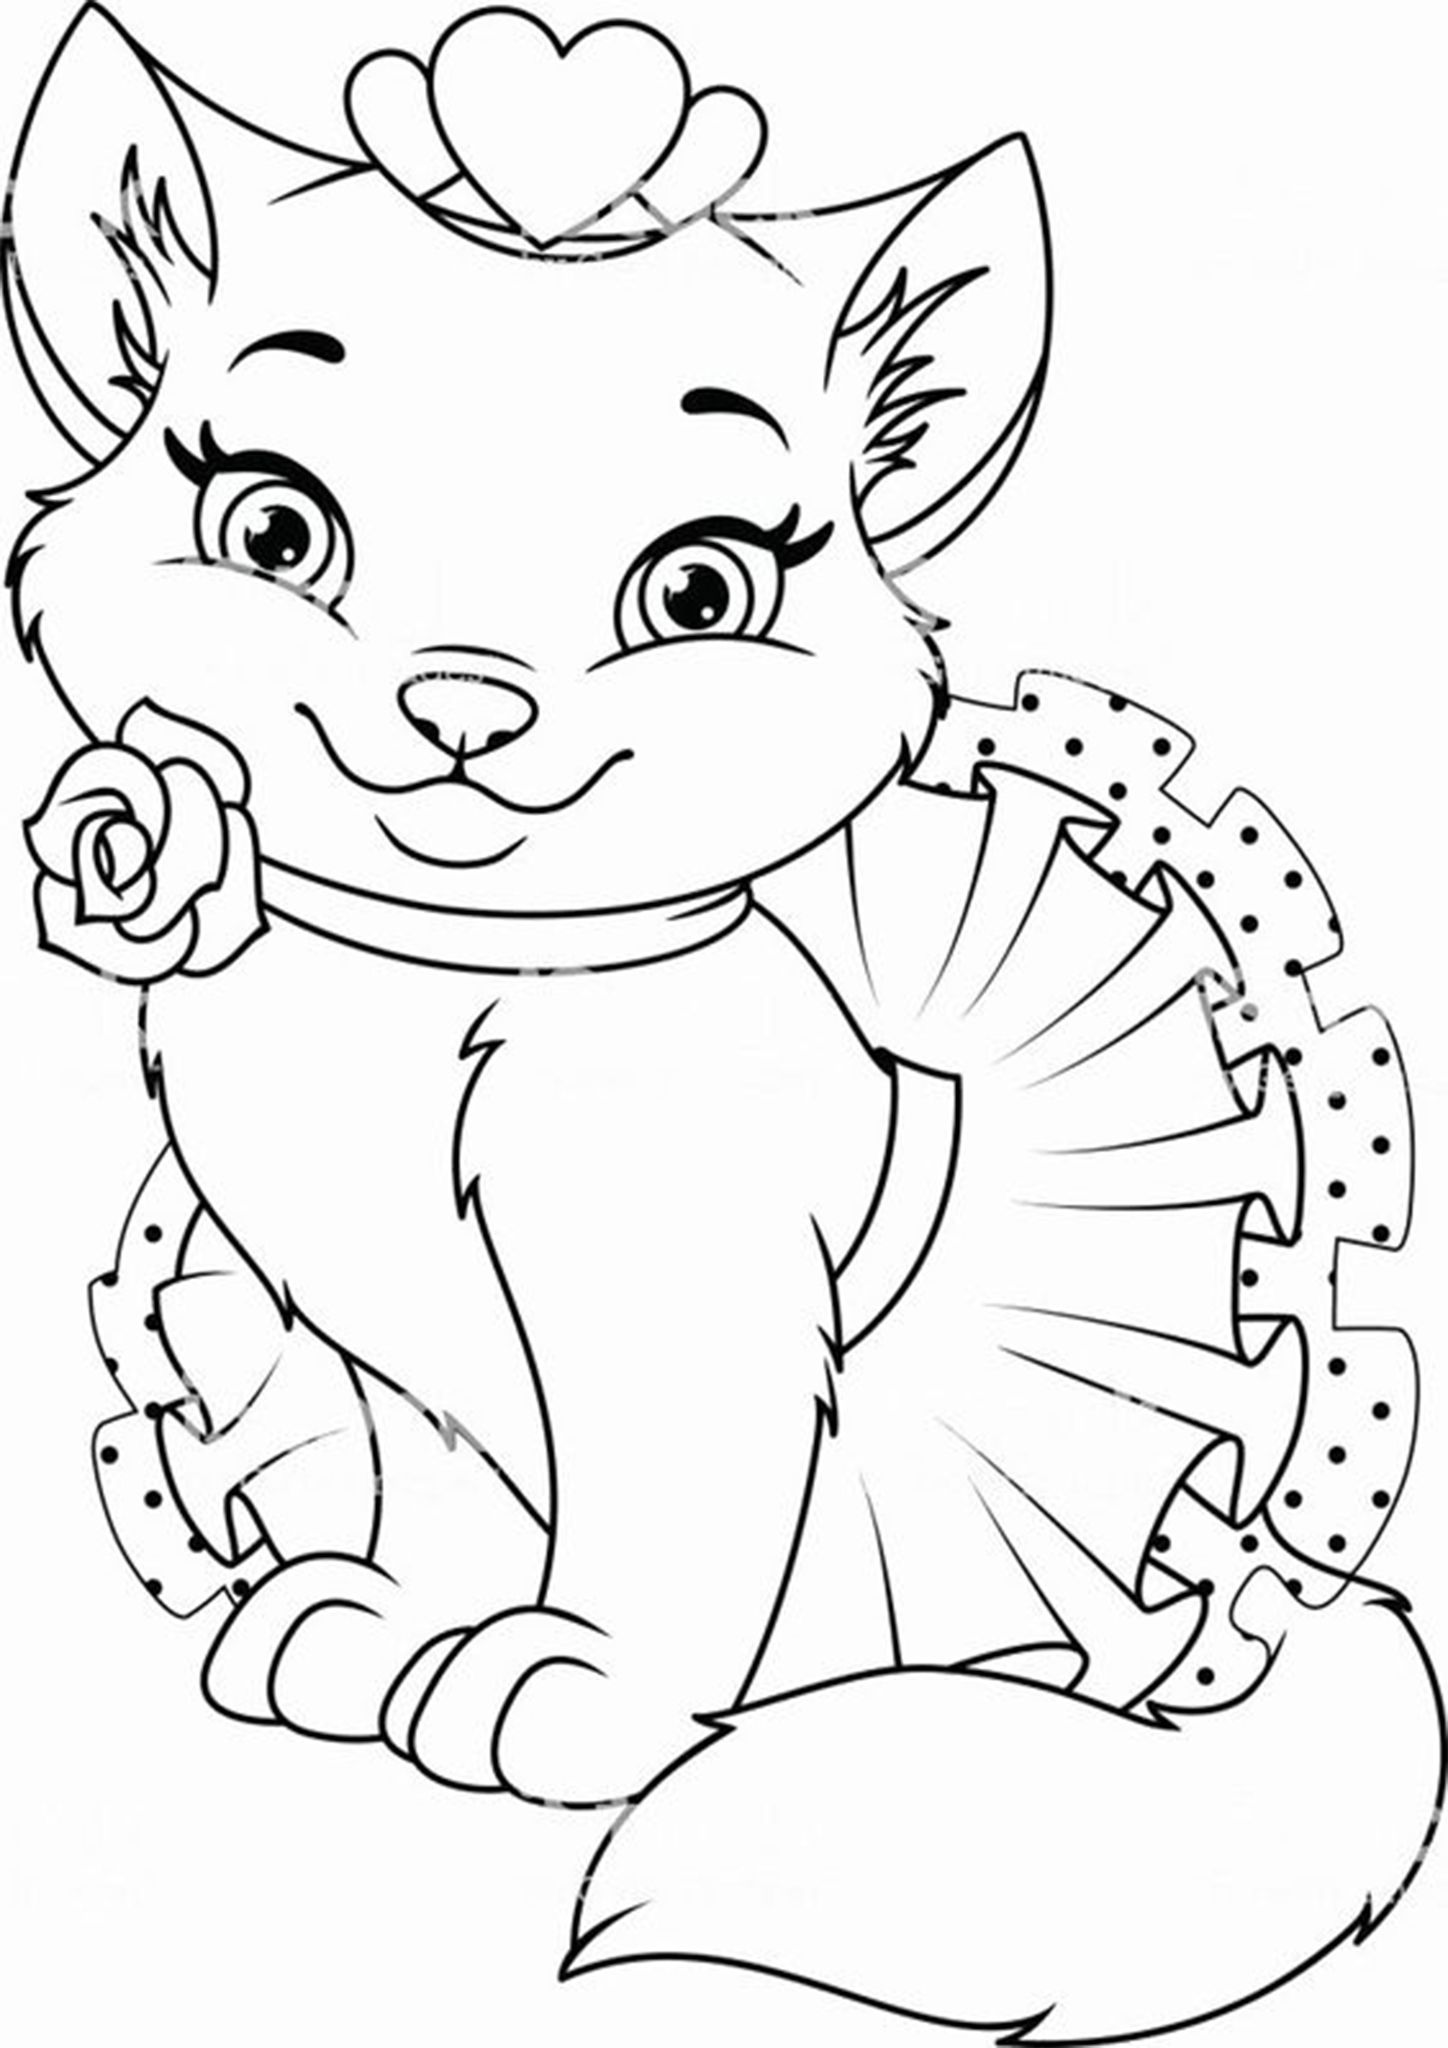 Free Easy To Print Kitten Coloring Pages In 2020 Cat Coloring Page Animal Coloring Pages Animal Coloring Books